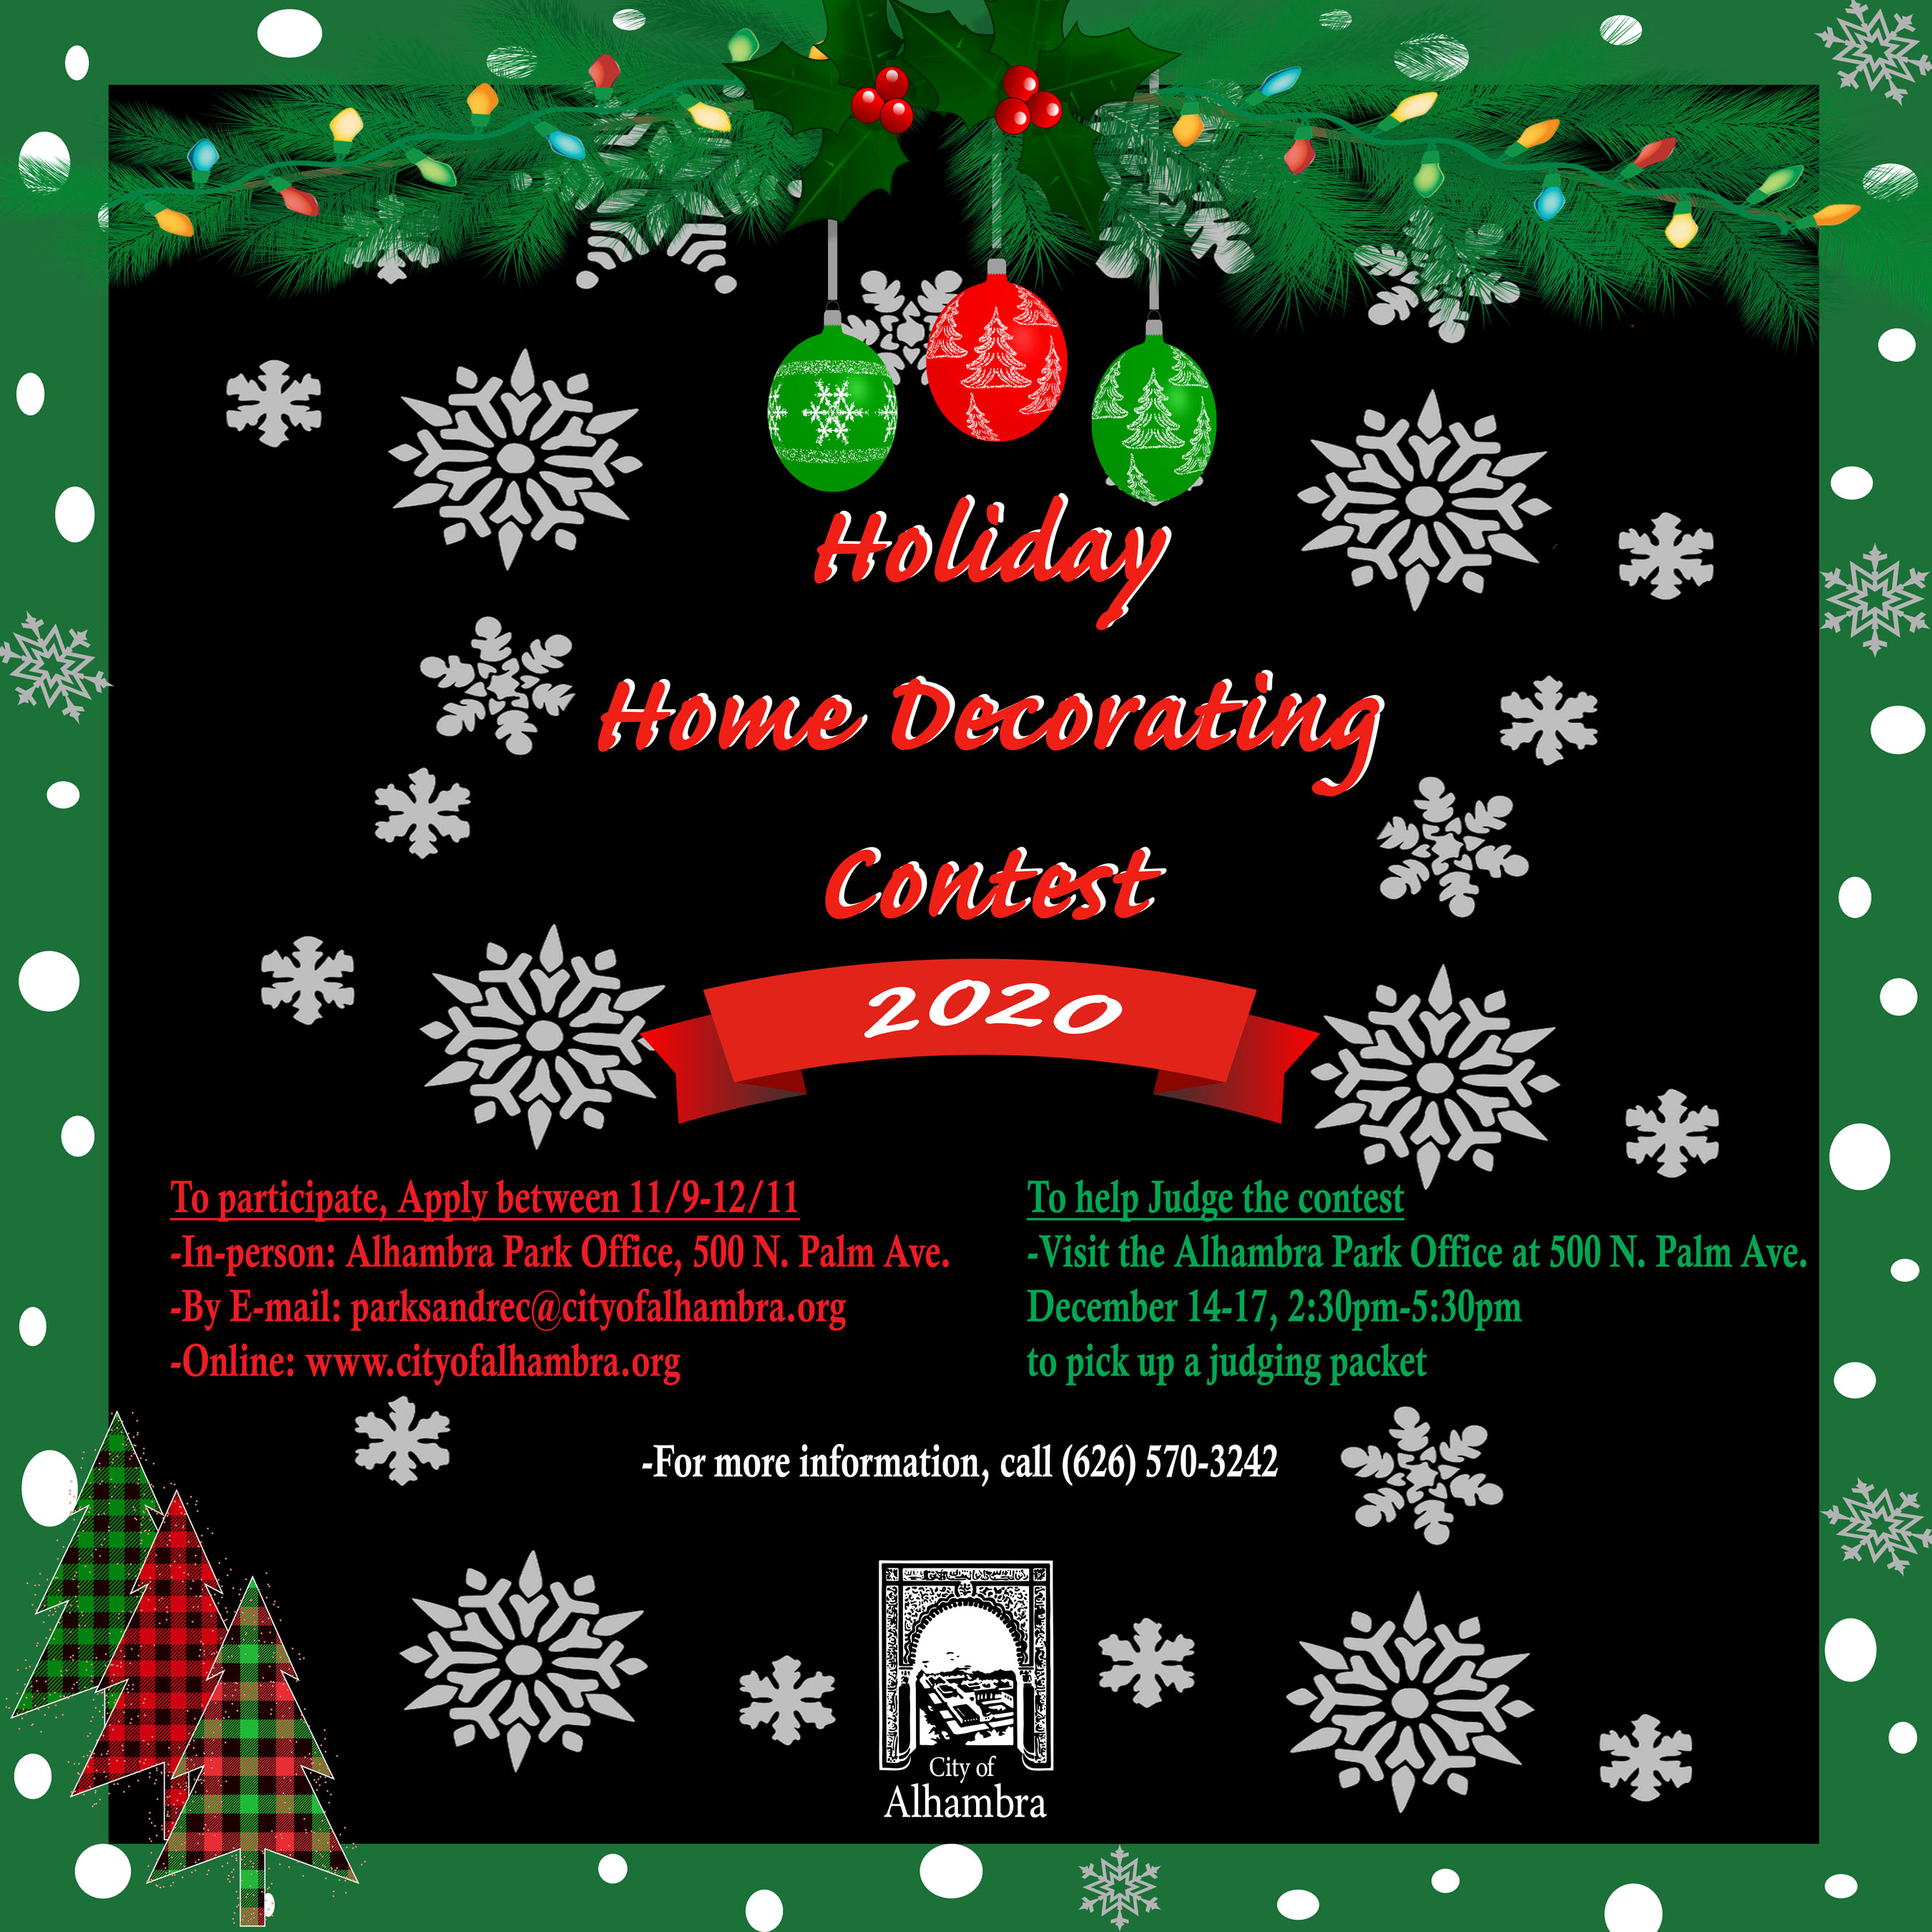 Holiday Home Decorating Contest 2020